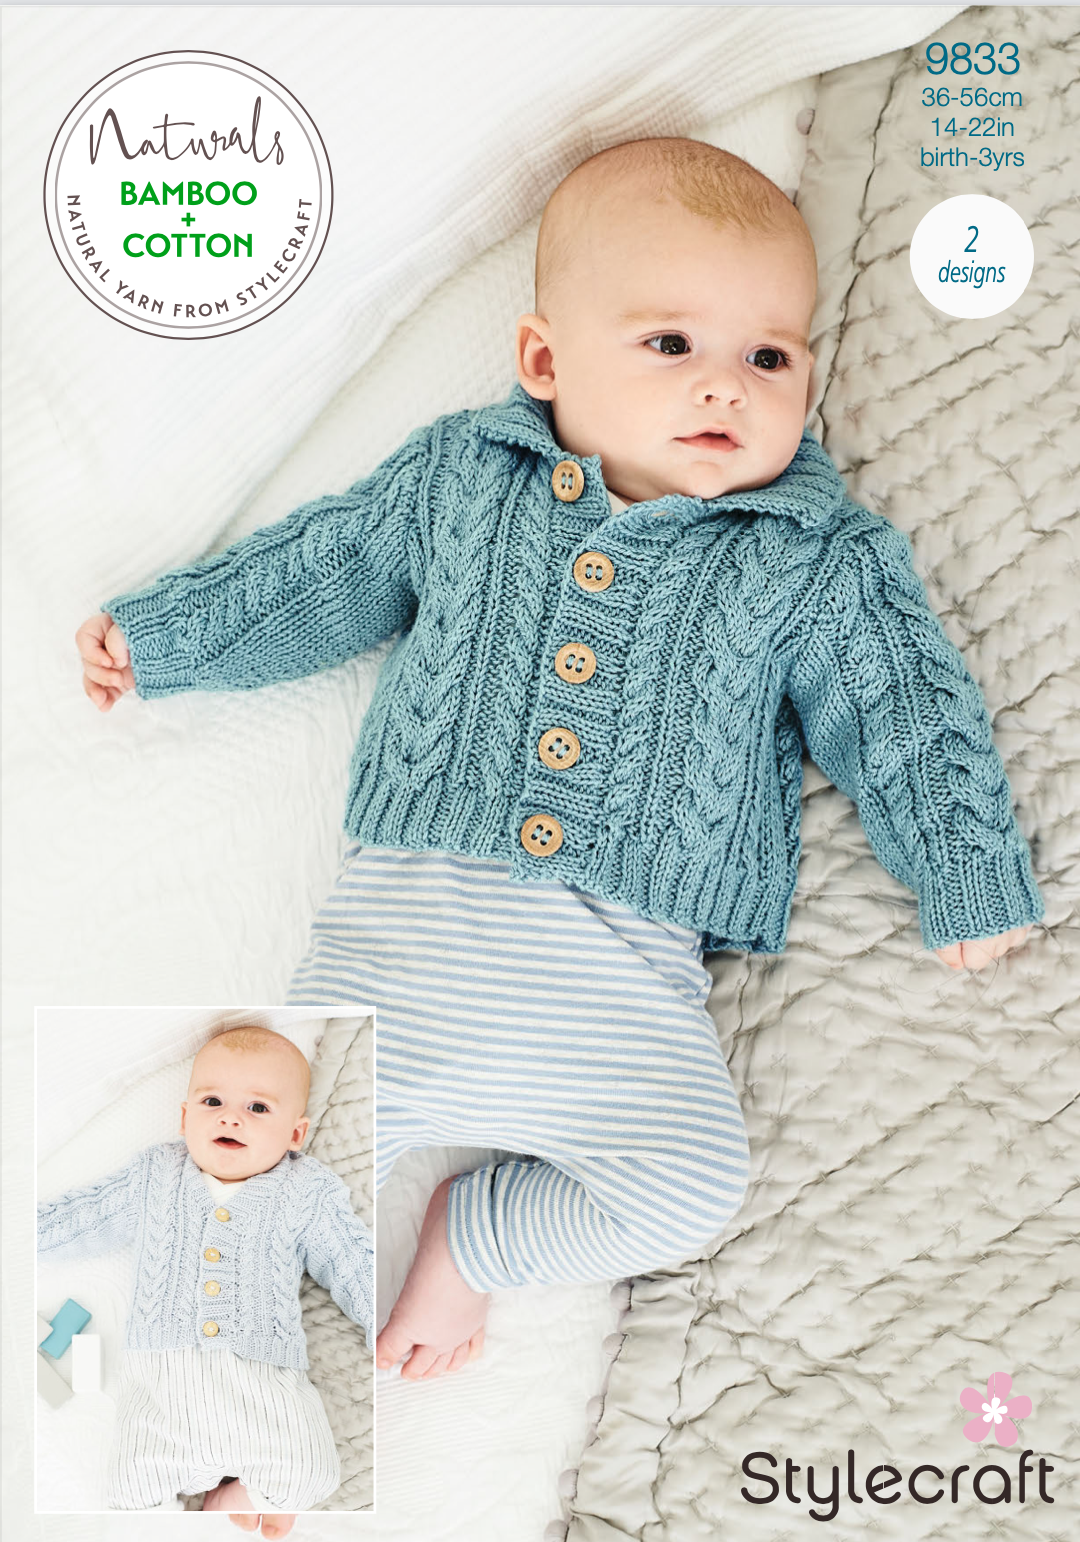 Stylecraft Pattern Naturals Bamboo+Cotton 9833 (download) product image